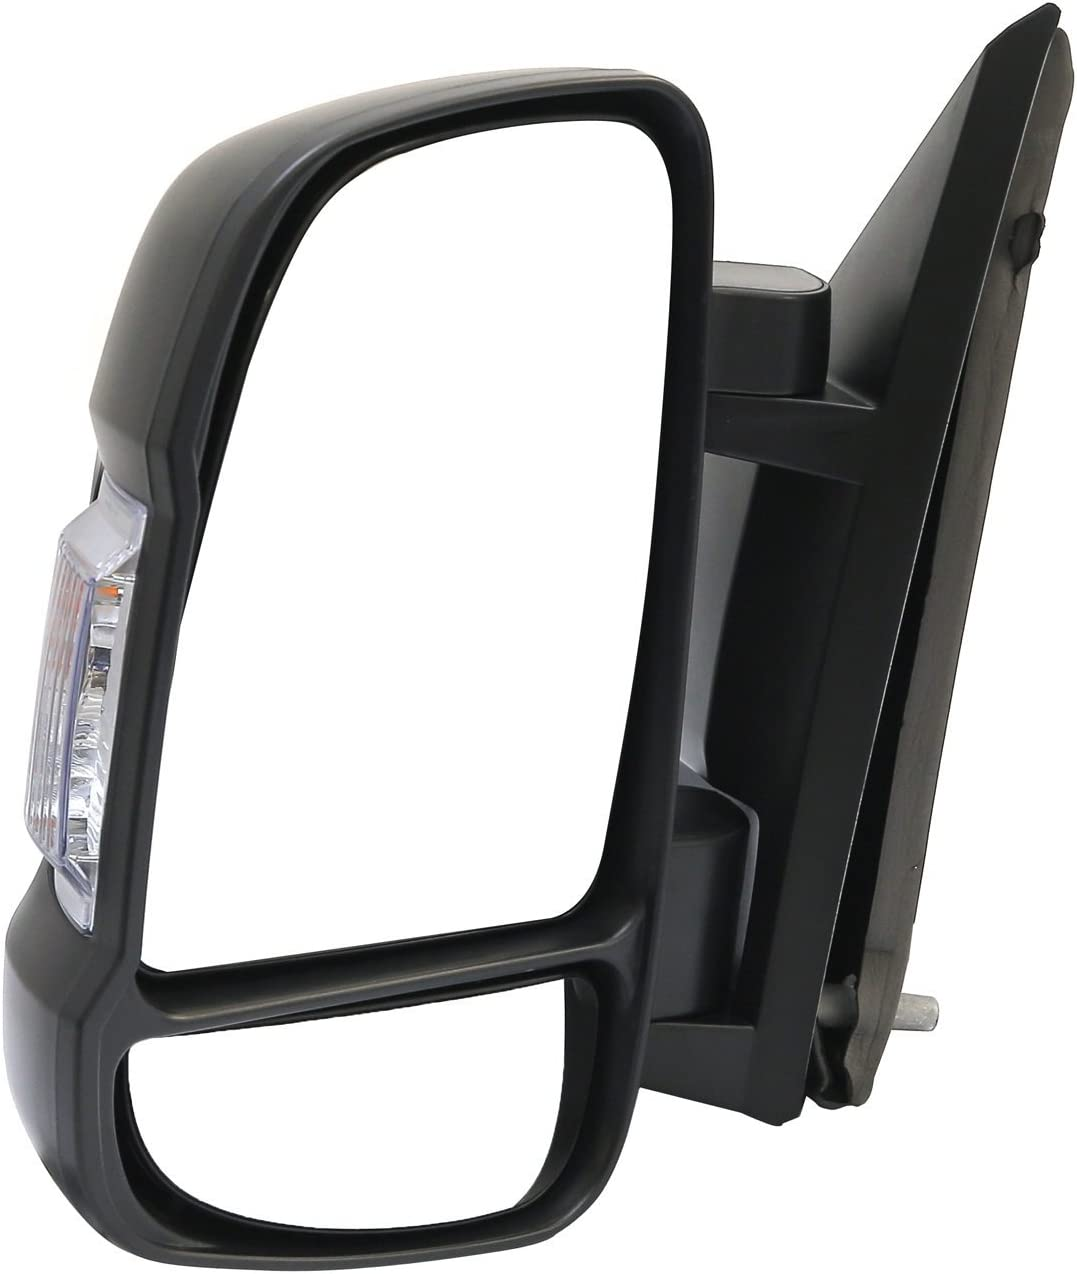 D552R Mirror Glass Lens for 14-19 RAM PROMASTER FULL SIZE ADHESIVE Passenger R